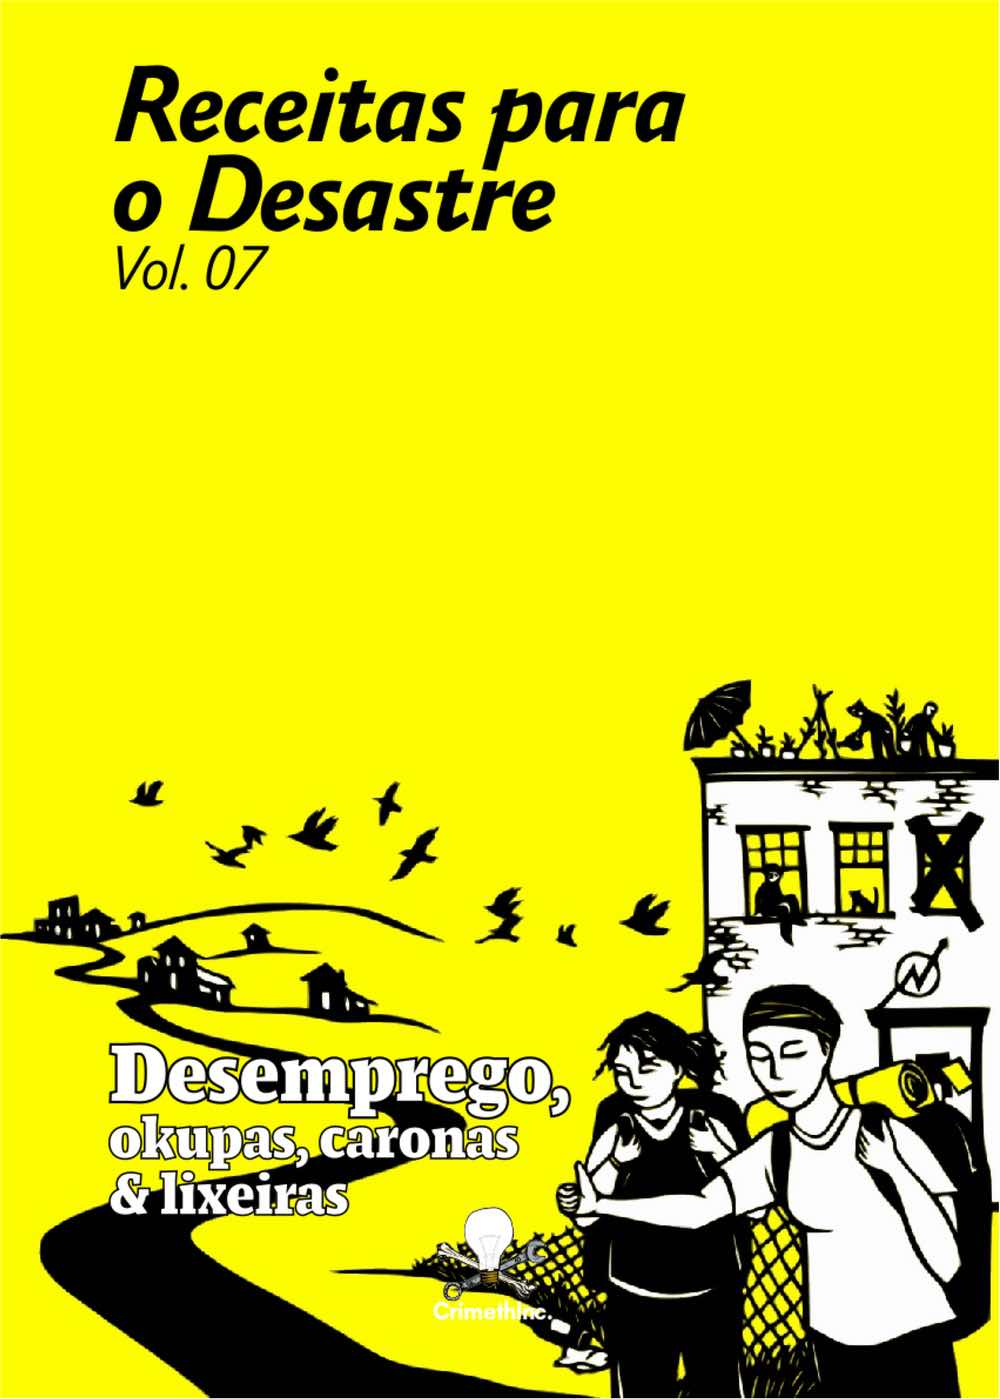 Photo of 'Receitas para o Desastre Vol. 07 (Portugues Brasileiro)' front cover